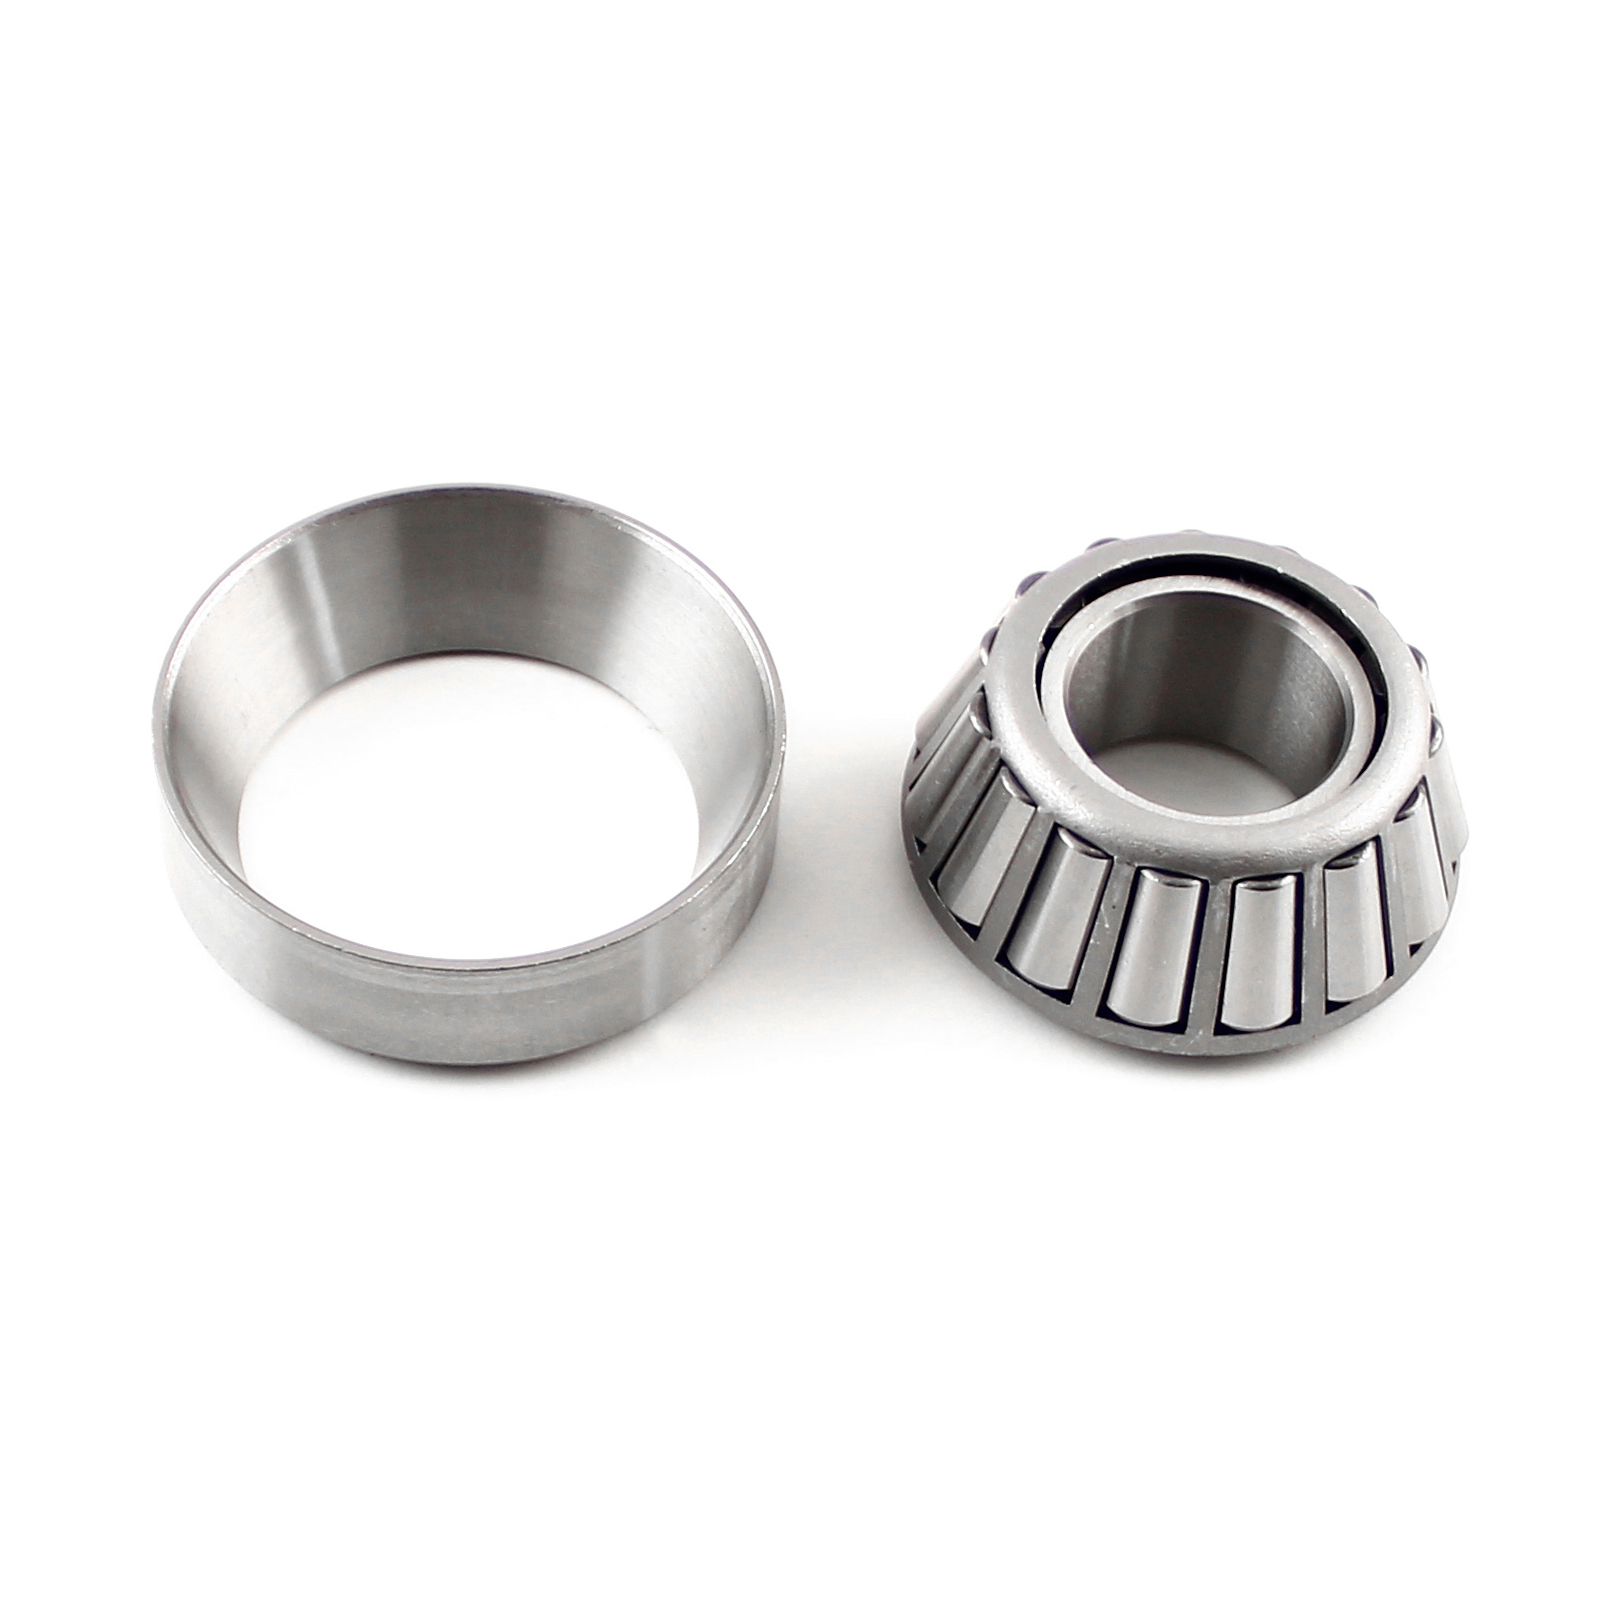 Pinion Bearing Industry Std Ref: Hm89443 / 410